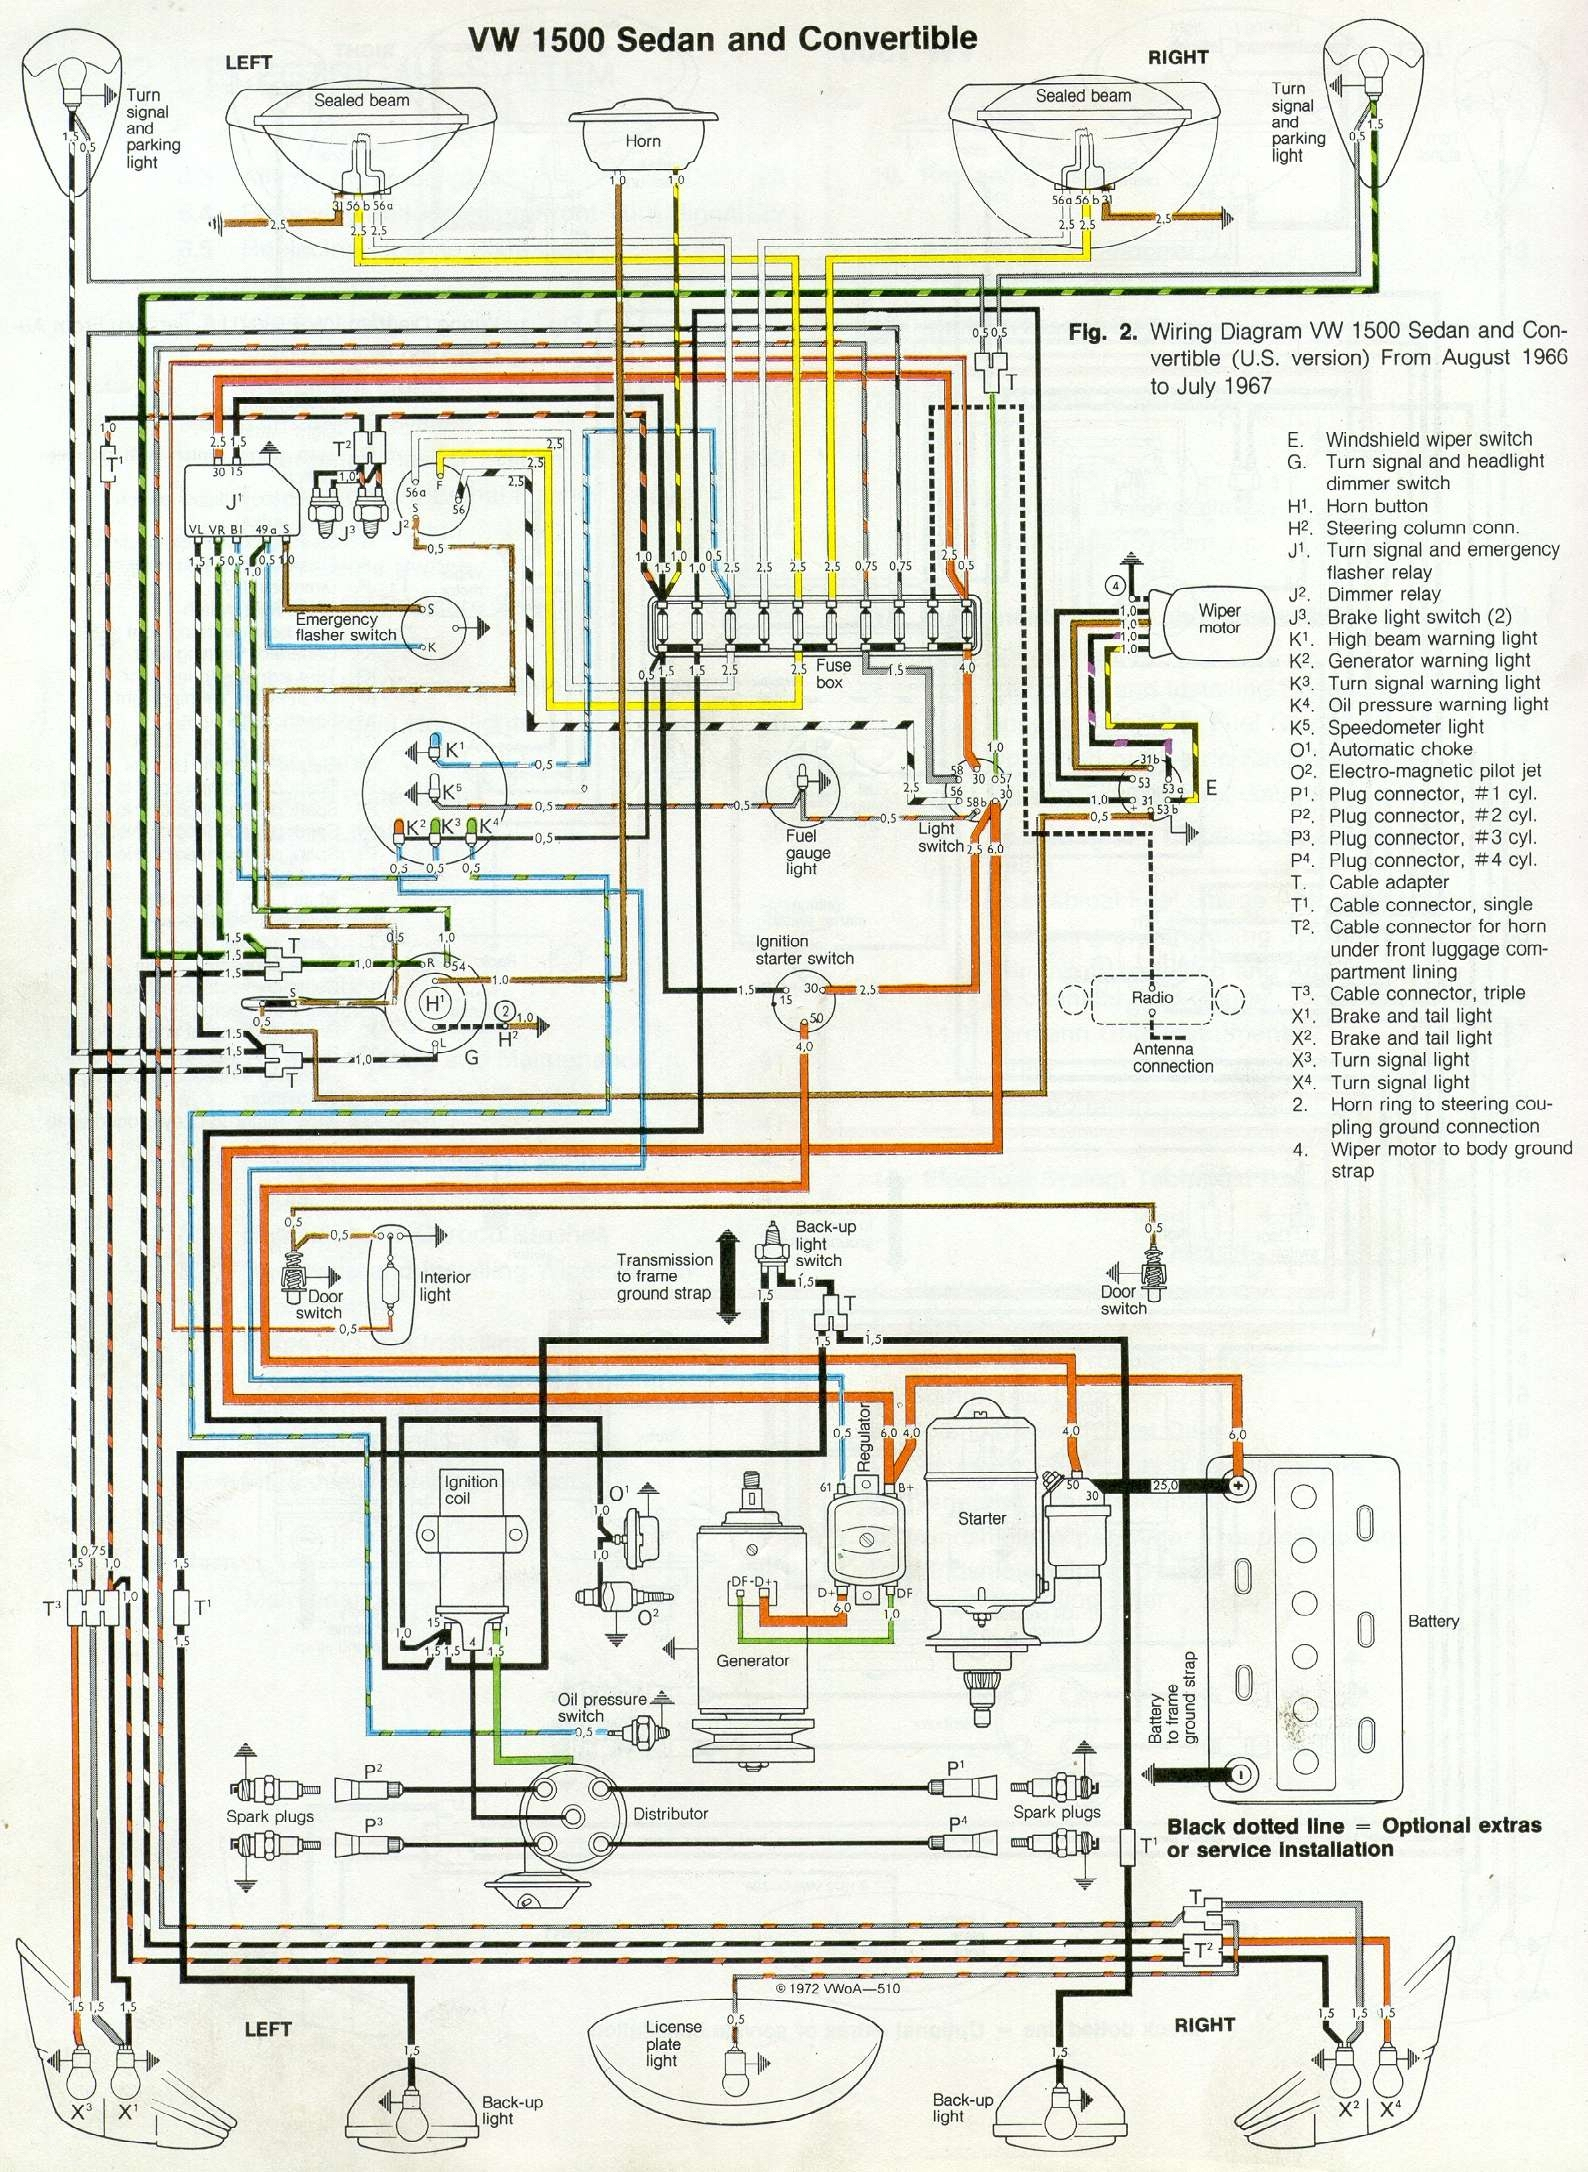 66 and 67 vw beetle wiring diagram 1967 vw beetle rh 1967beetle com 1967 volkswagen beetle wiring diagram 1968 vw wiring diagram for a headlight switch